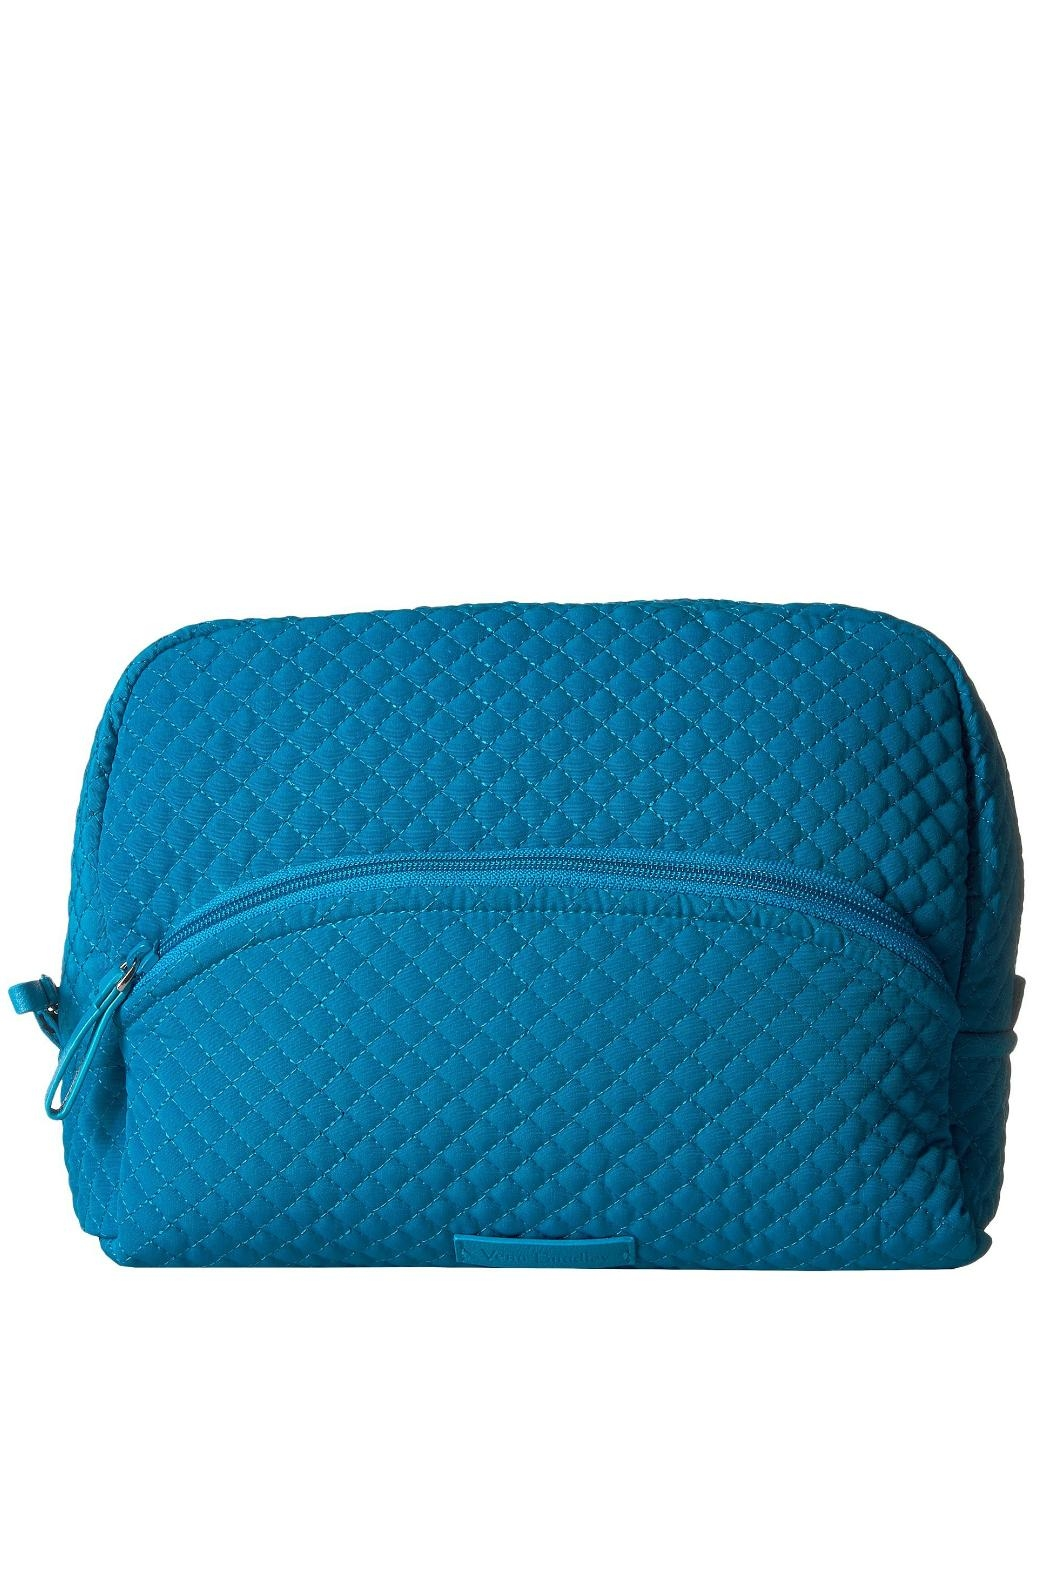 507eb7108a Vera Bradley Bahama Bay Large-Cosmetic from Kentucky by Mimi s Gift ...